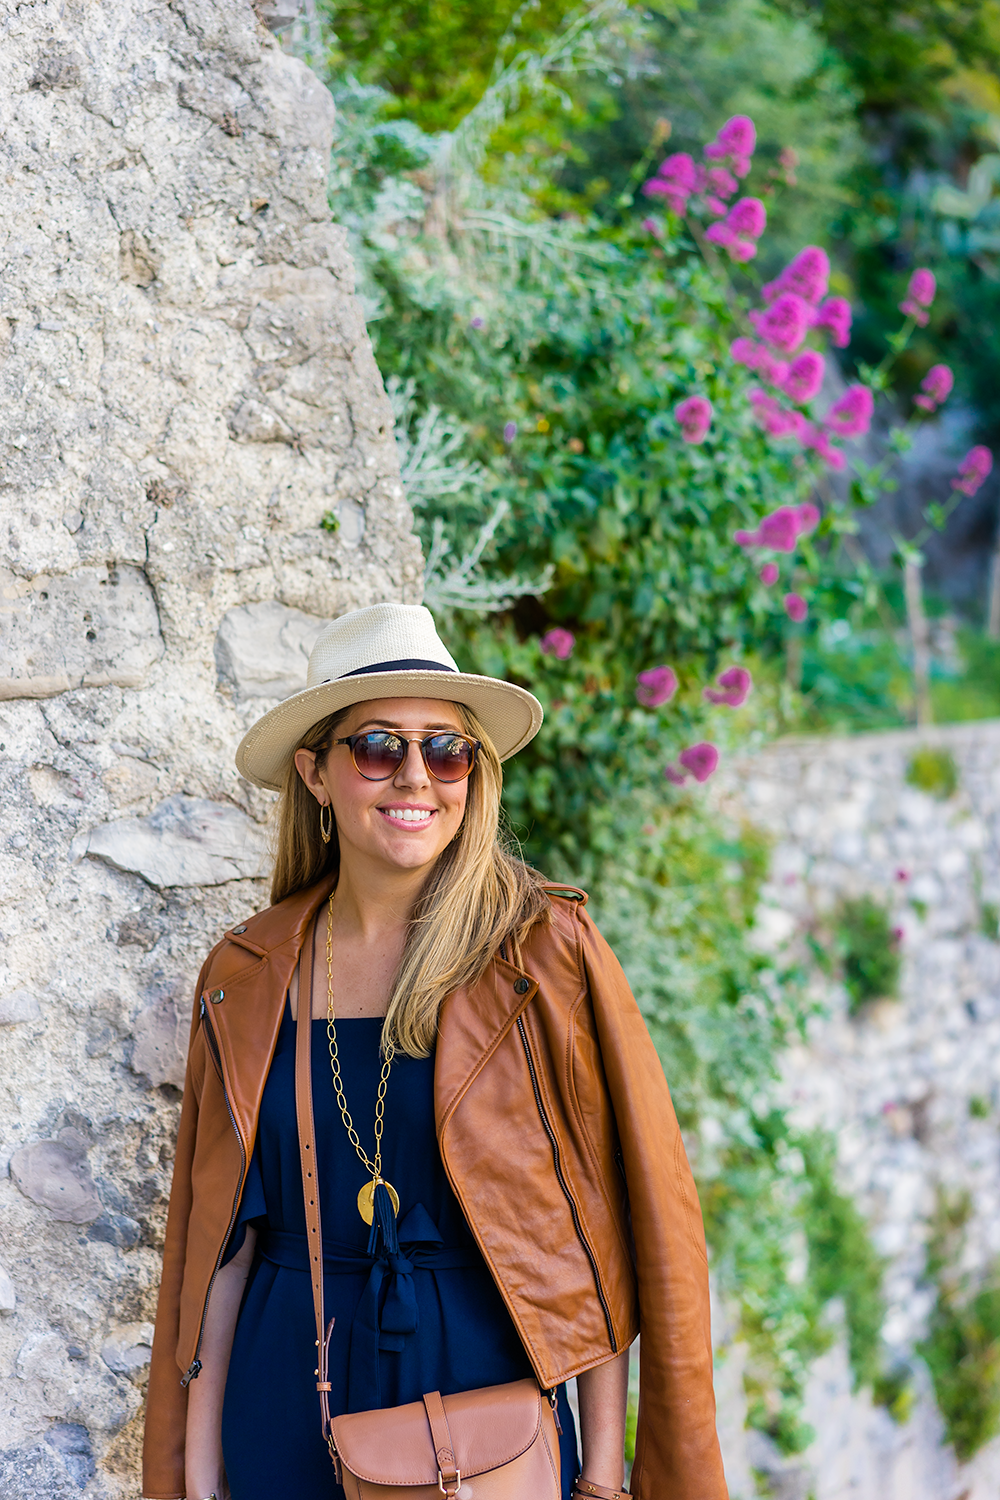 Positano, Italy - leather jacket, panama hat, navy jumpsuit